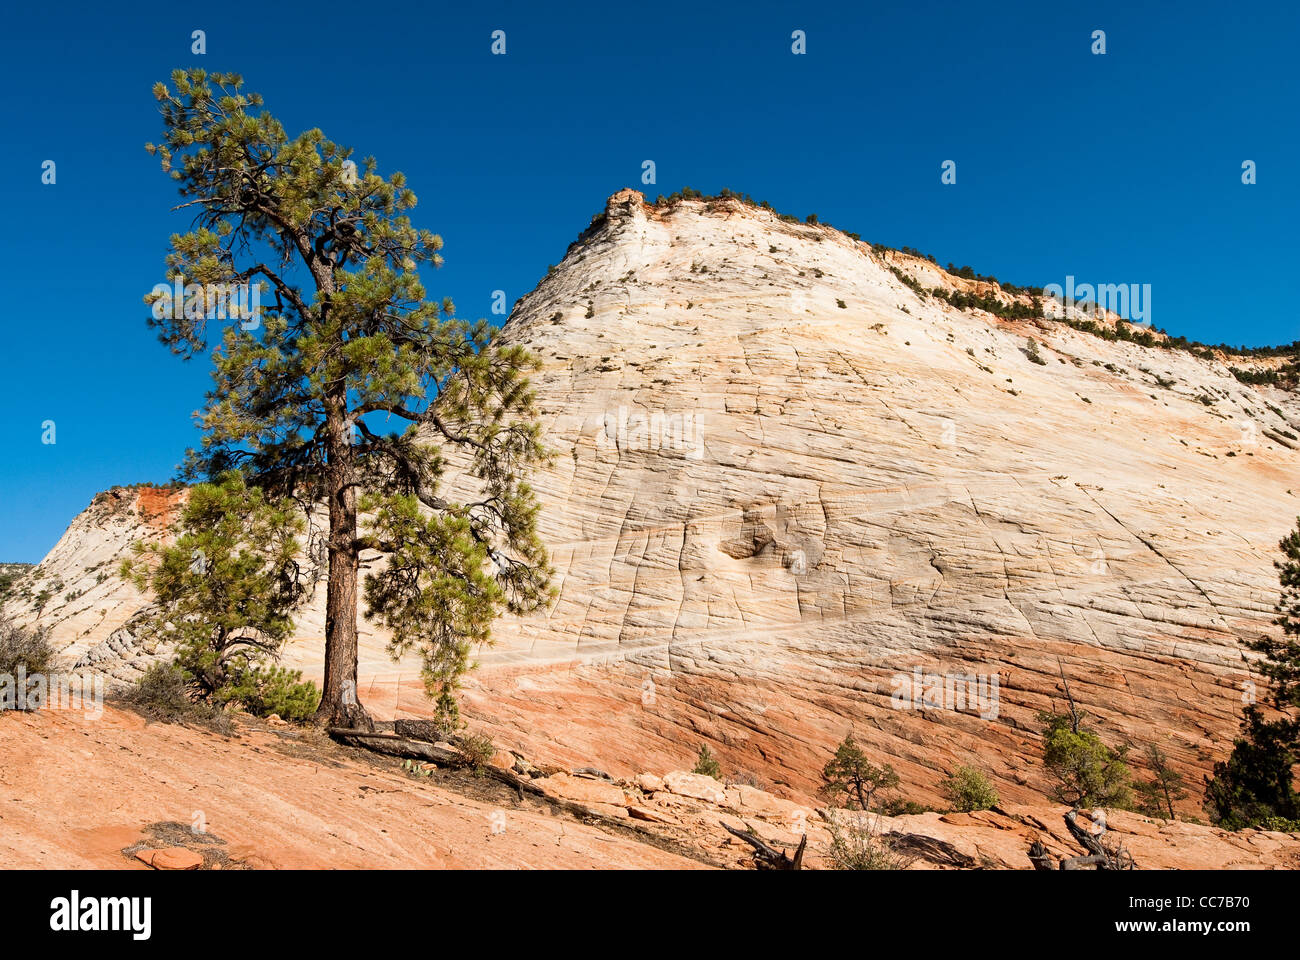 checkerboard mesa. scenic view of sandstone cliffs in zion national park, utah, usa - Stock Image